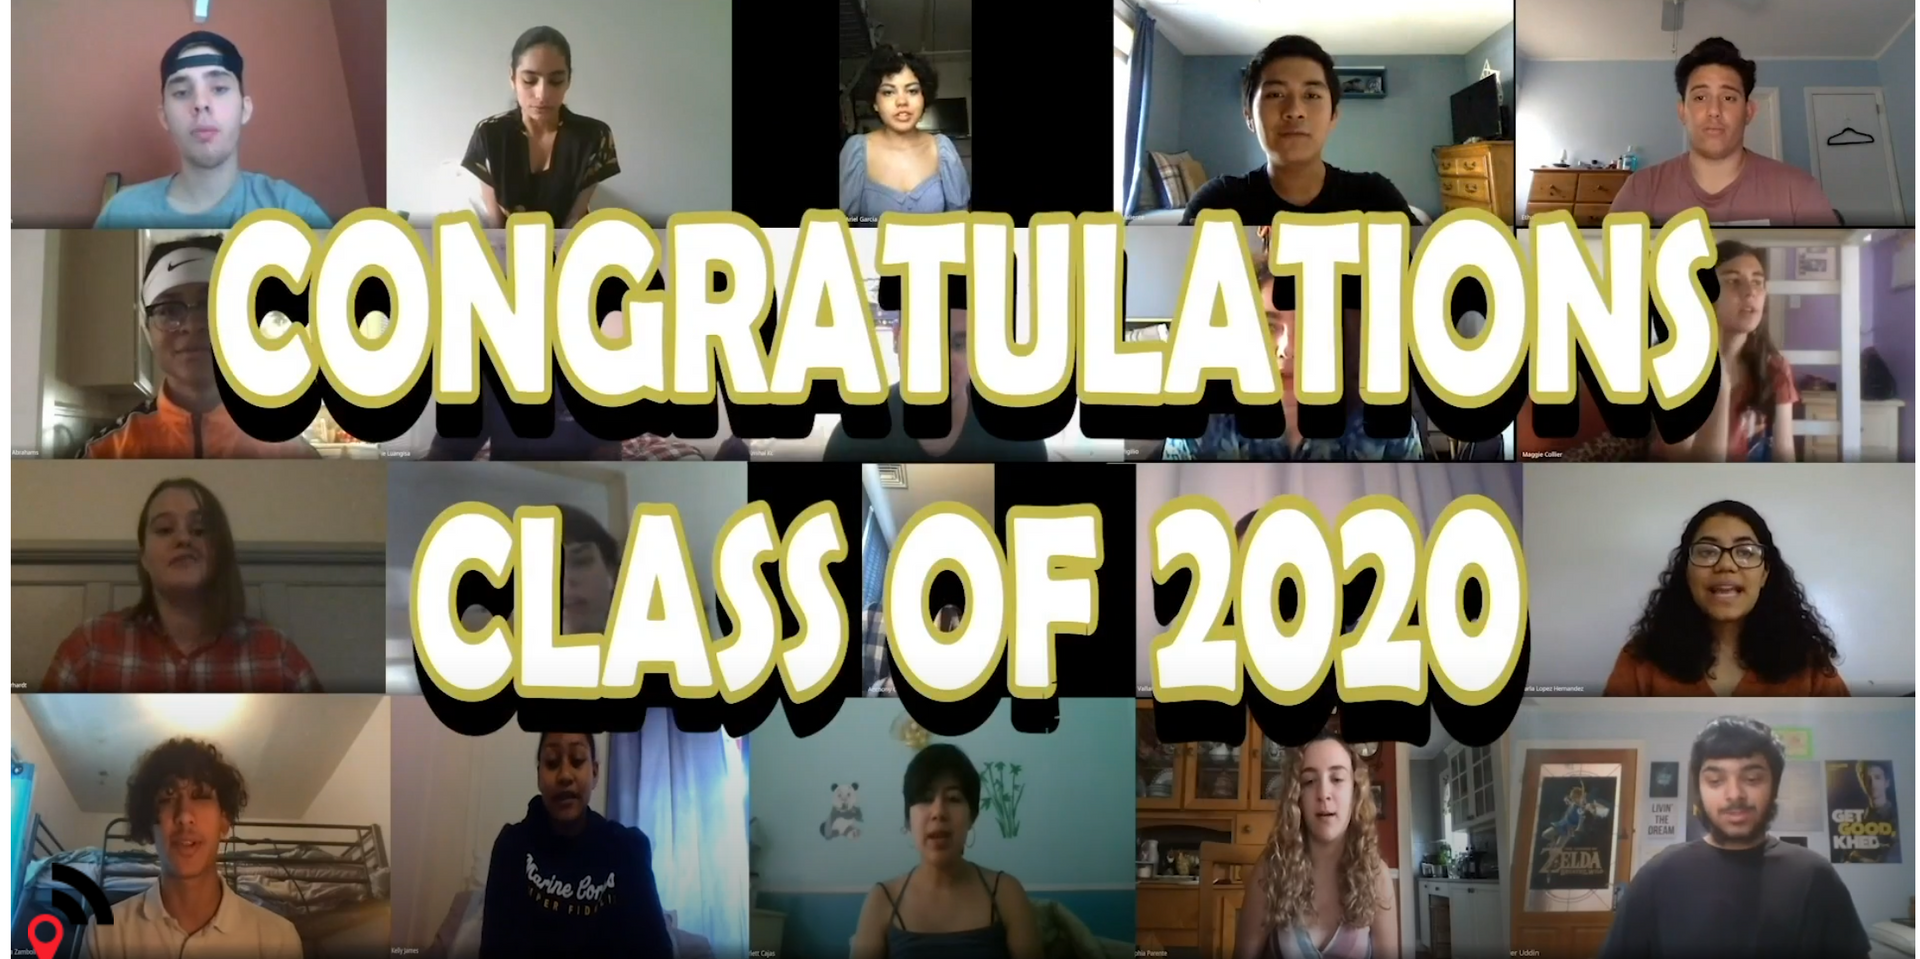 Video montage of students